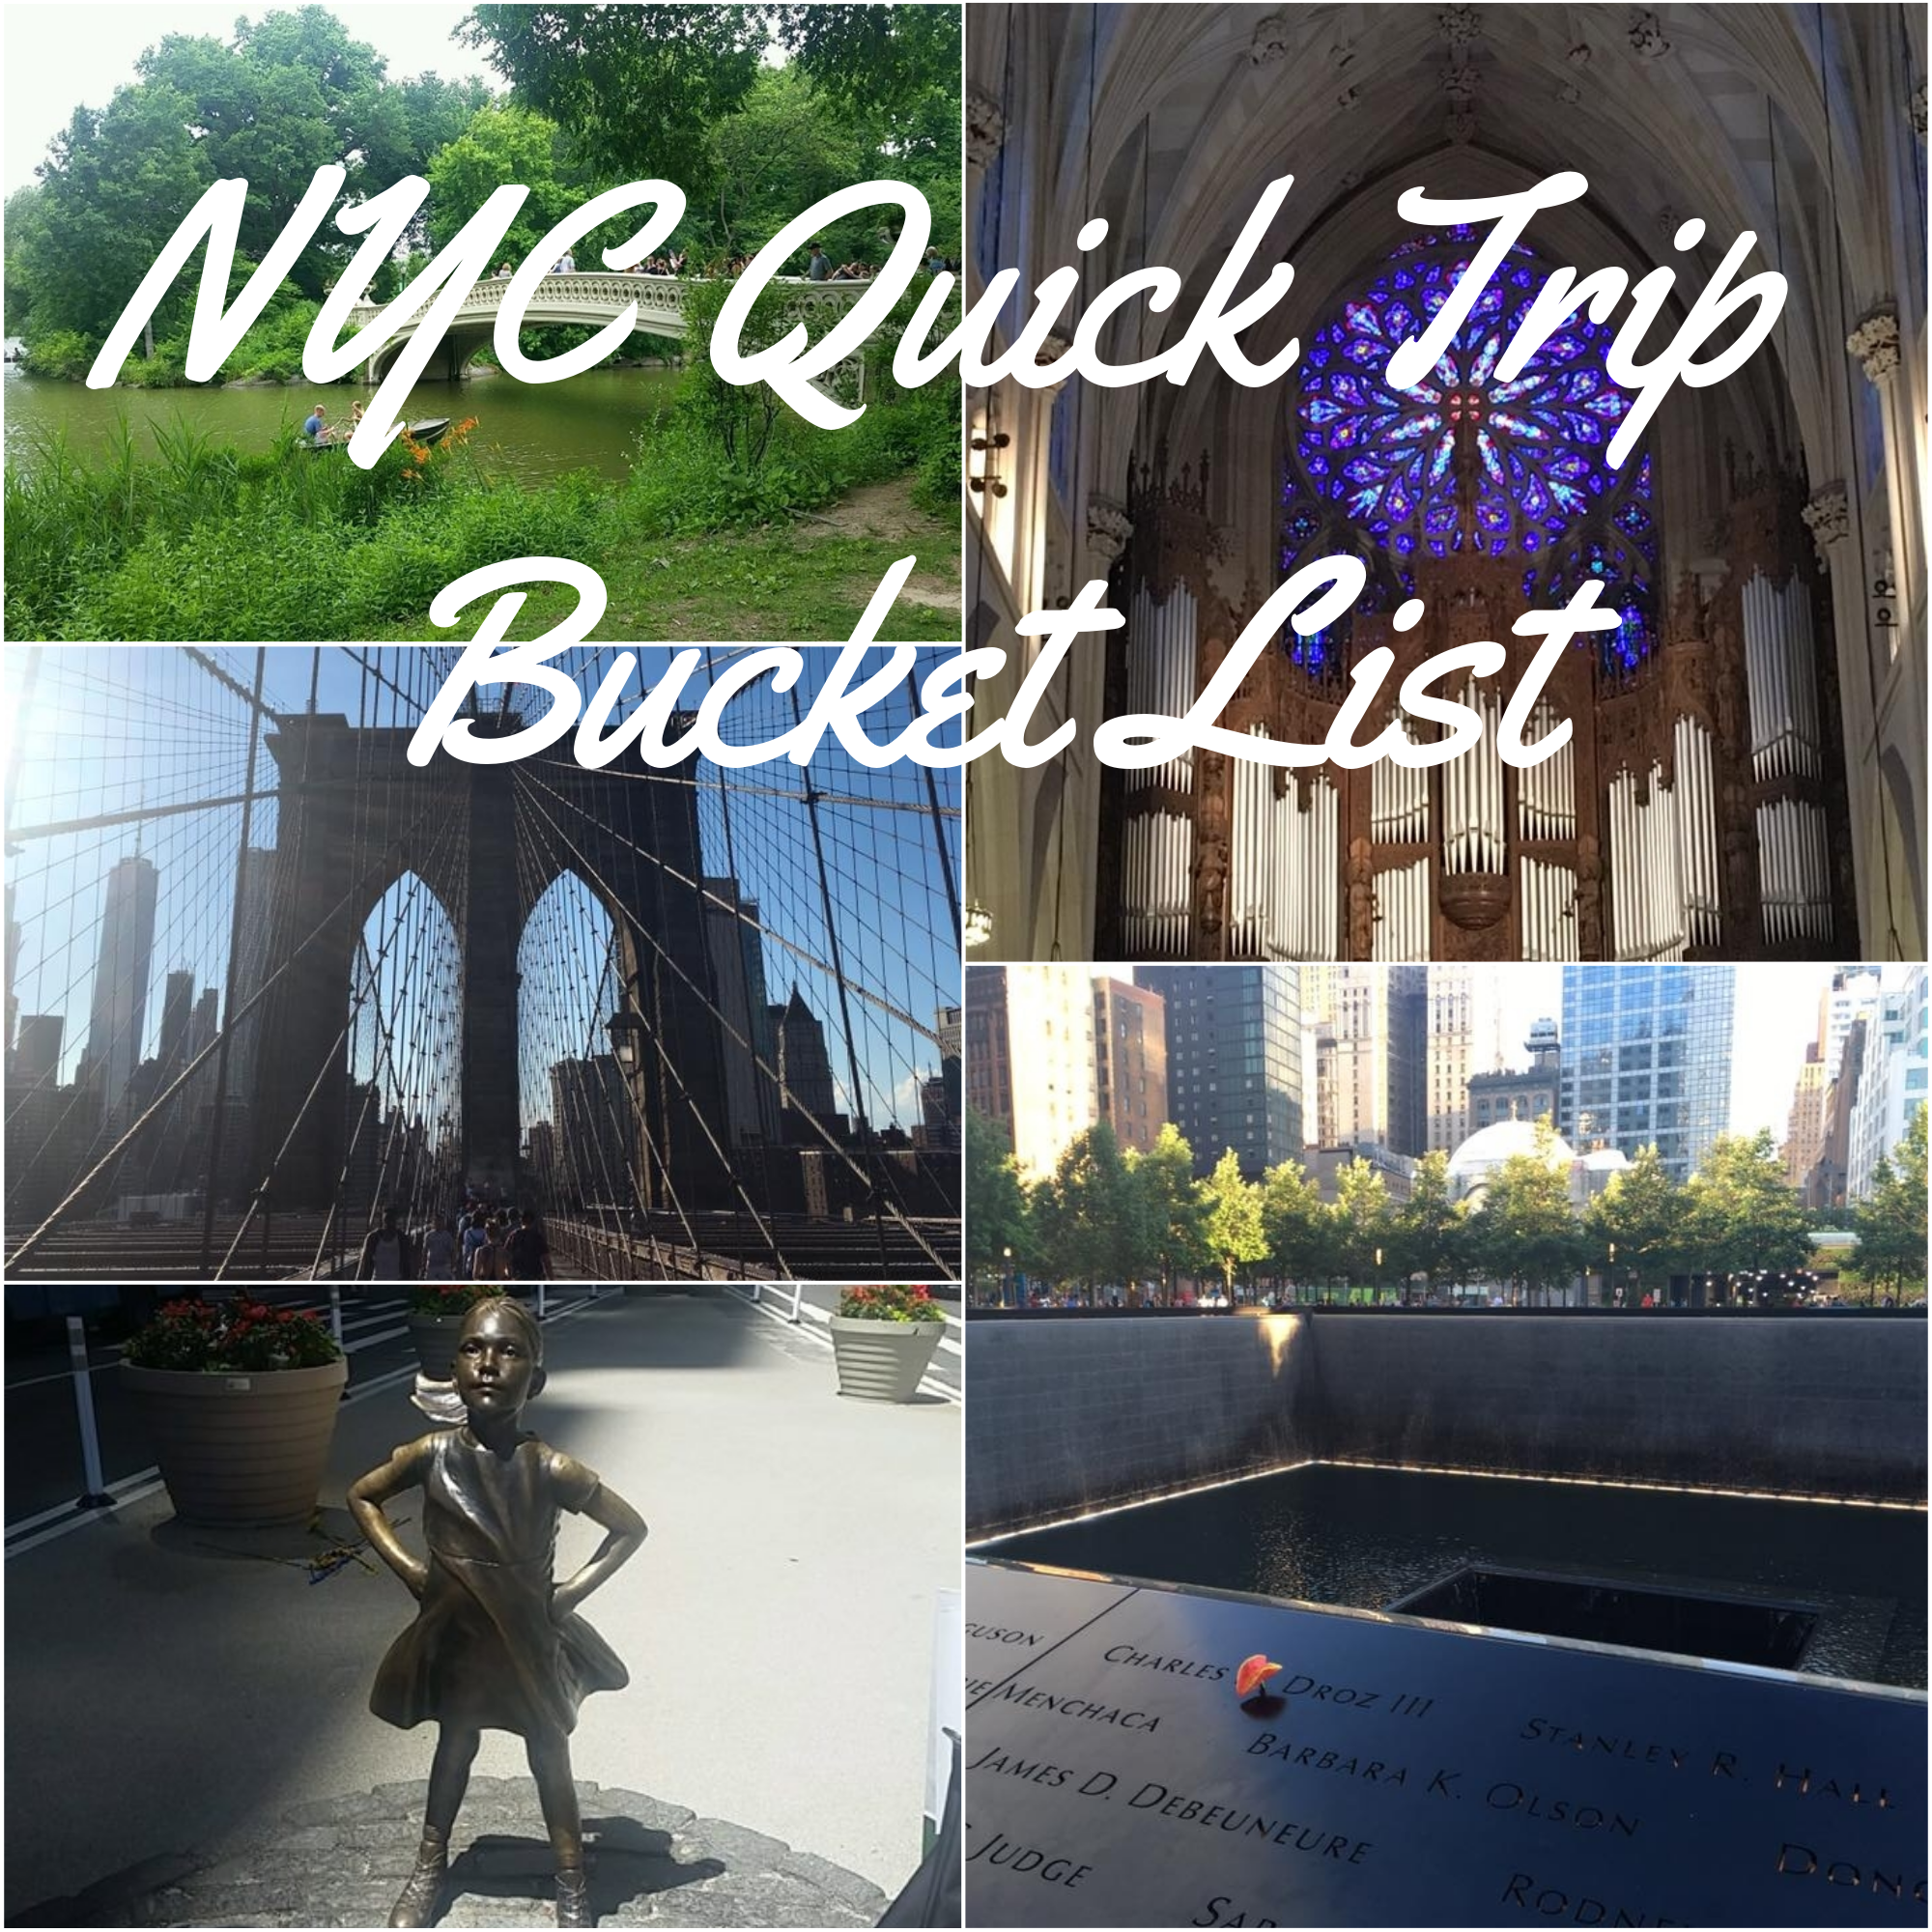 You can fit so many iconic NYC experiences into a quick trip to the Big Apple.